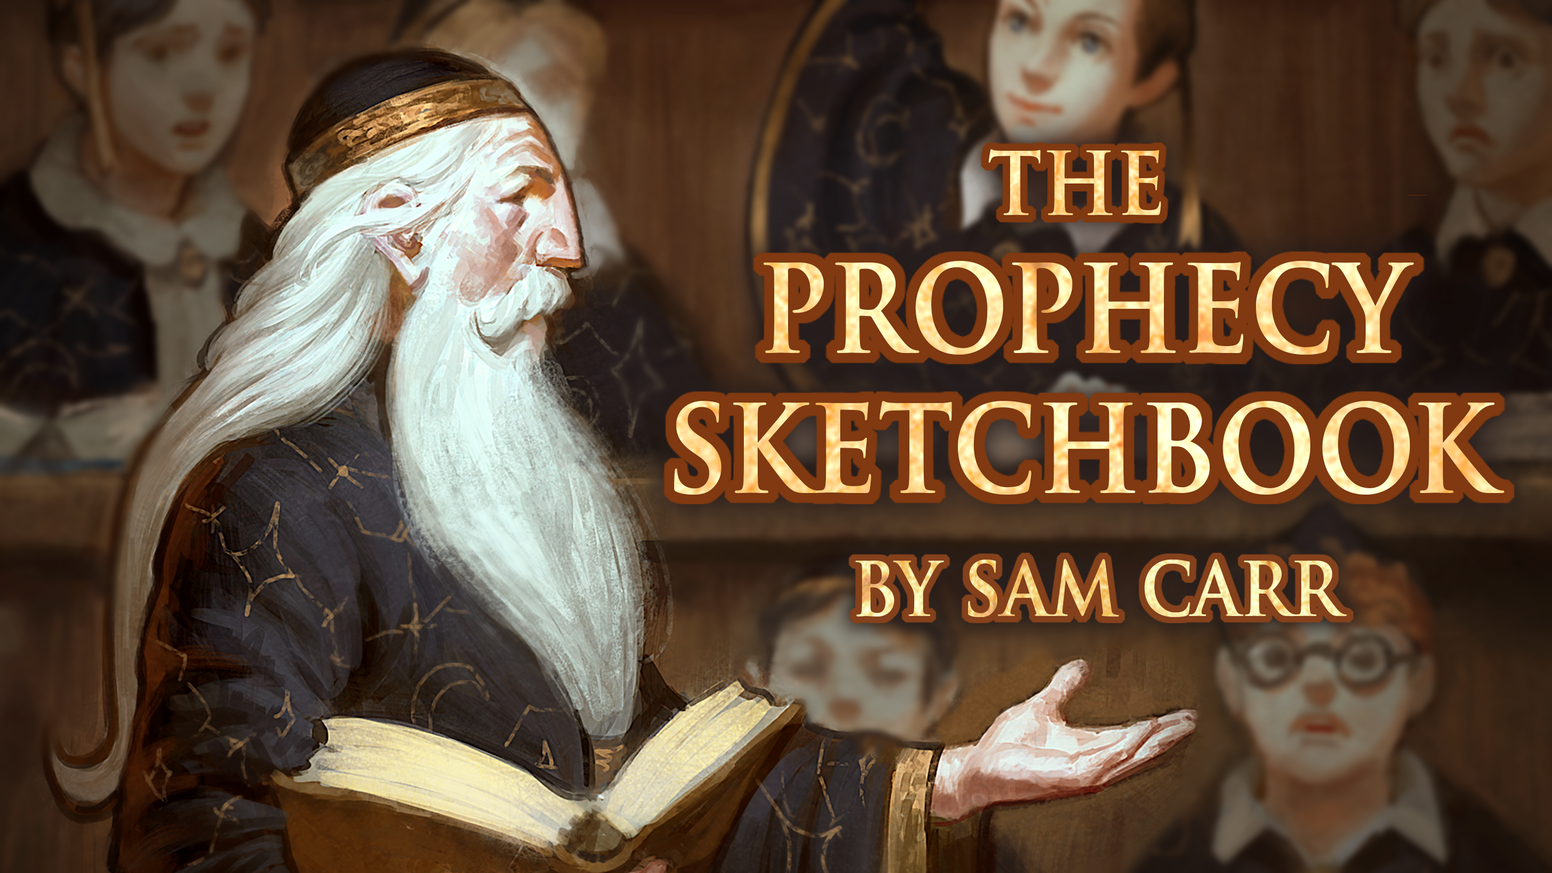 A book of paintings and sketches created by Sam Carr. Explore the artwork of this fairytale world with a dark and humorous twist.